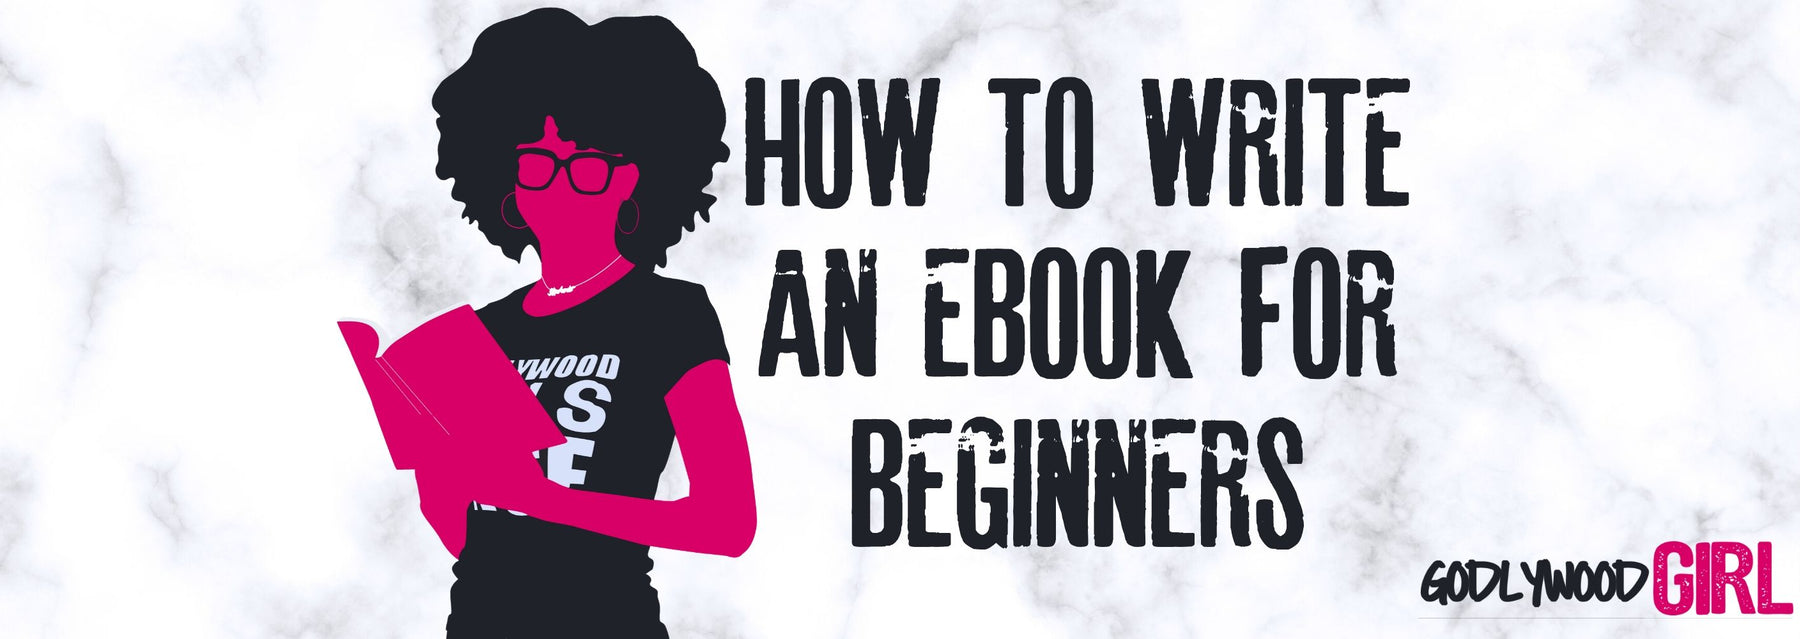 HOW TO WRITE AN EBOOK FOR BEGINNERS | STEPS TO SELF-PUBLISH A BOOK ONLINE (Christian Entrepreneur)